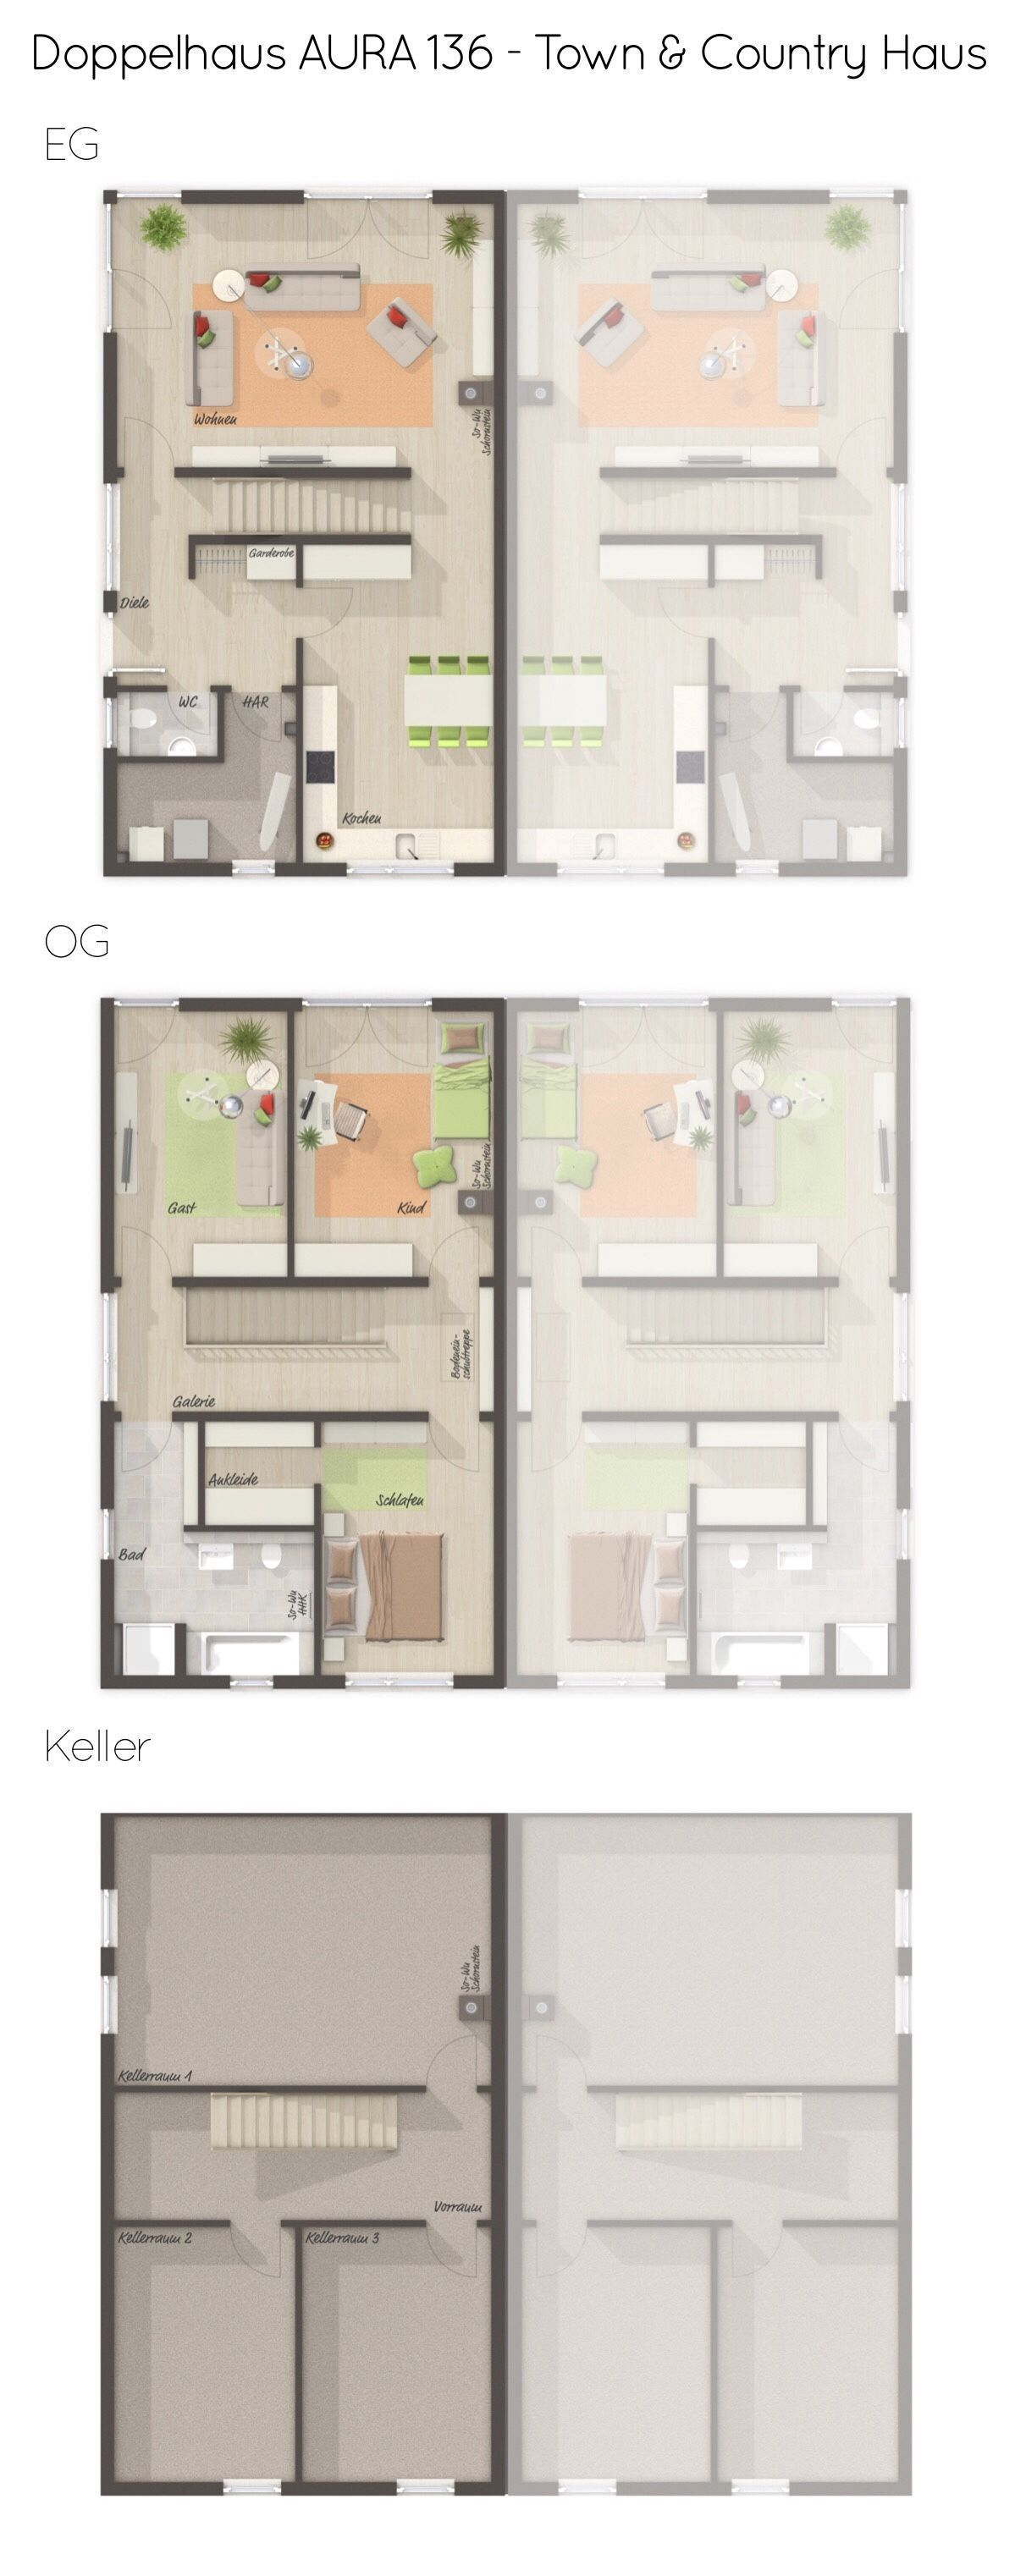 Semidetached house AURA 136 modern with clinker facade  Town  Country House  direct construction Floor plan semidetached house narrow with basement  straight staircase  4...